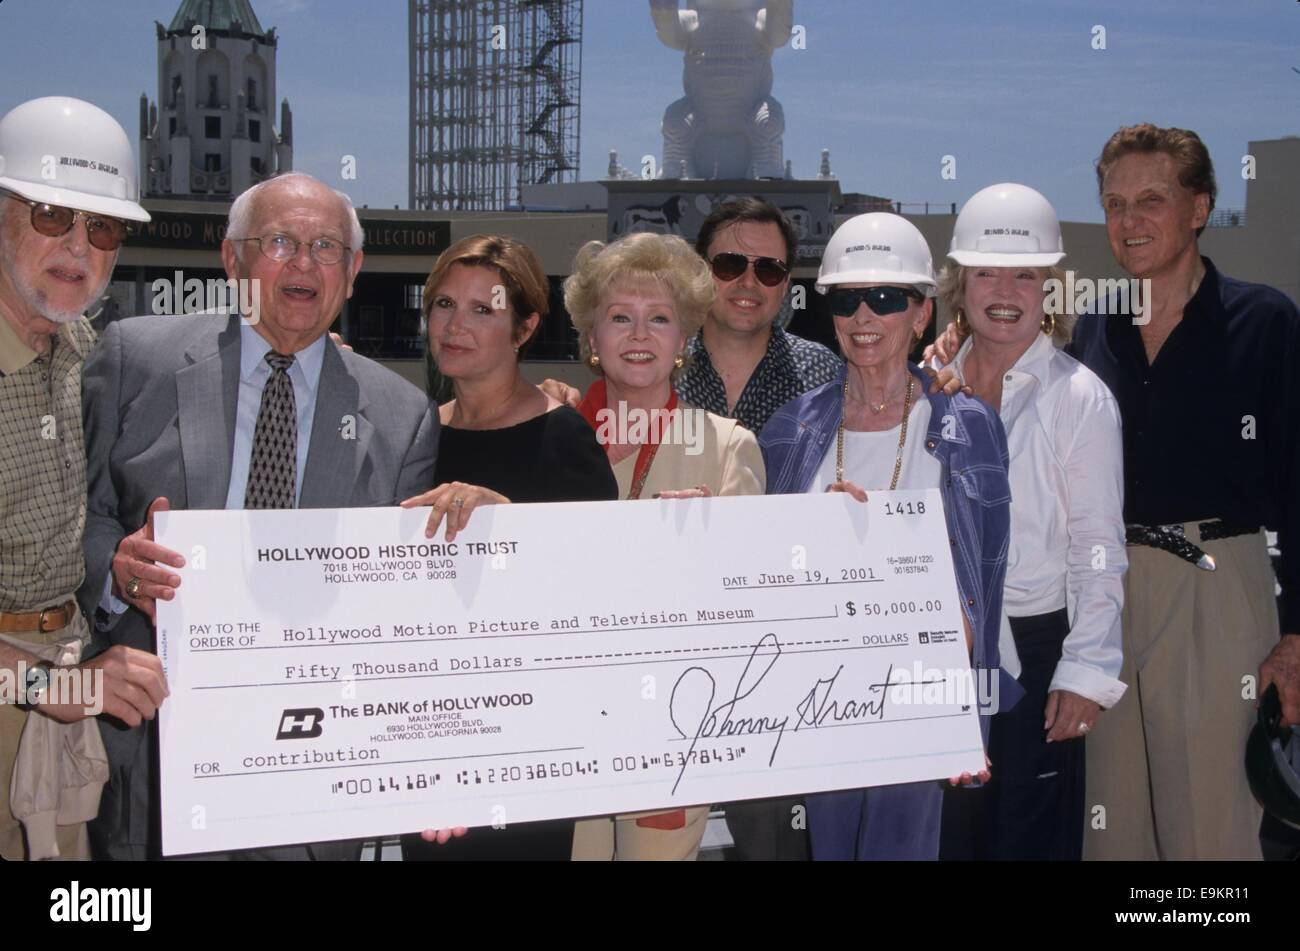 Ground-breaking of the new Hollywood Motion Picture Museum.David L. Wolper, Carrie Fisher, Debbie Reynolds, Tod - Stock Image